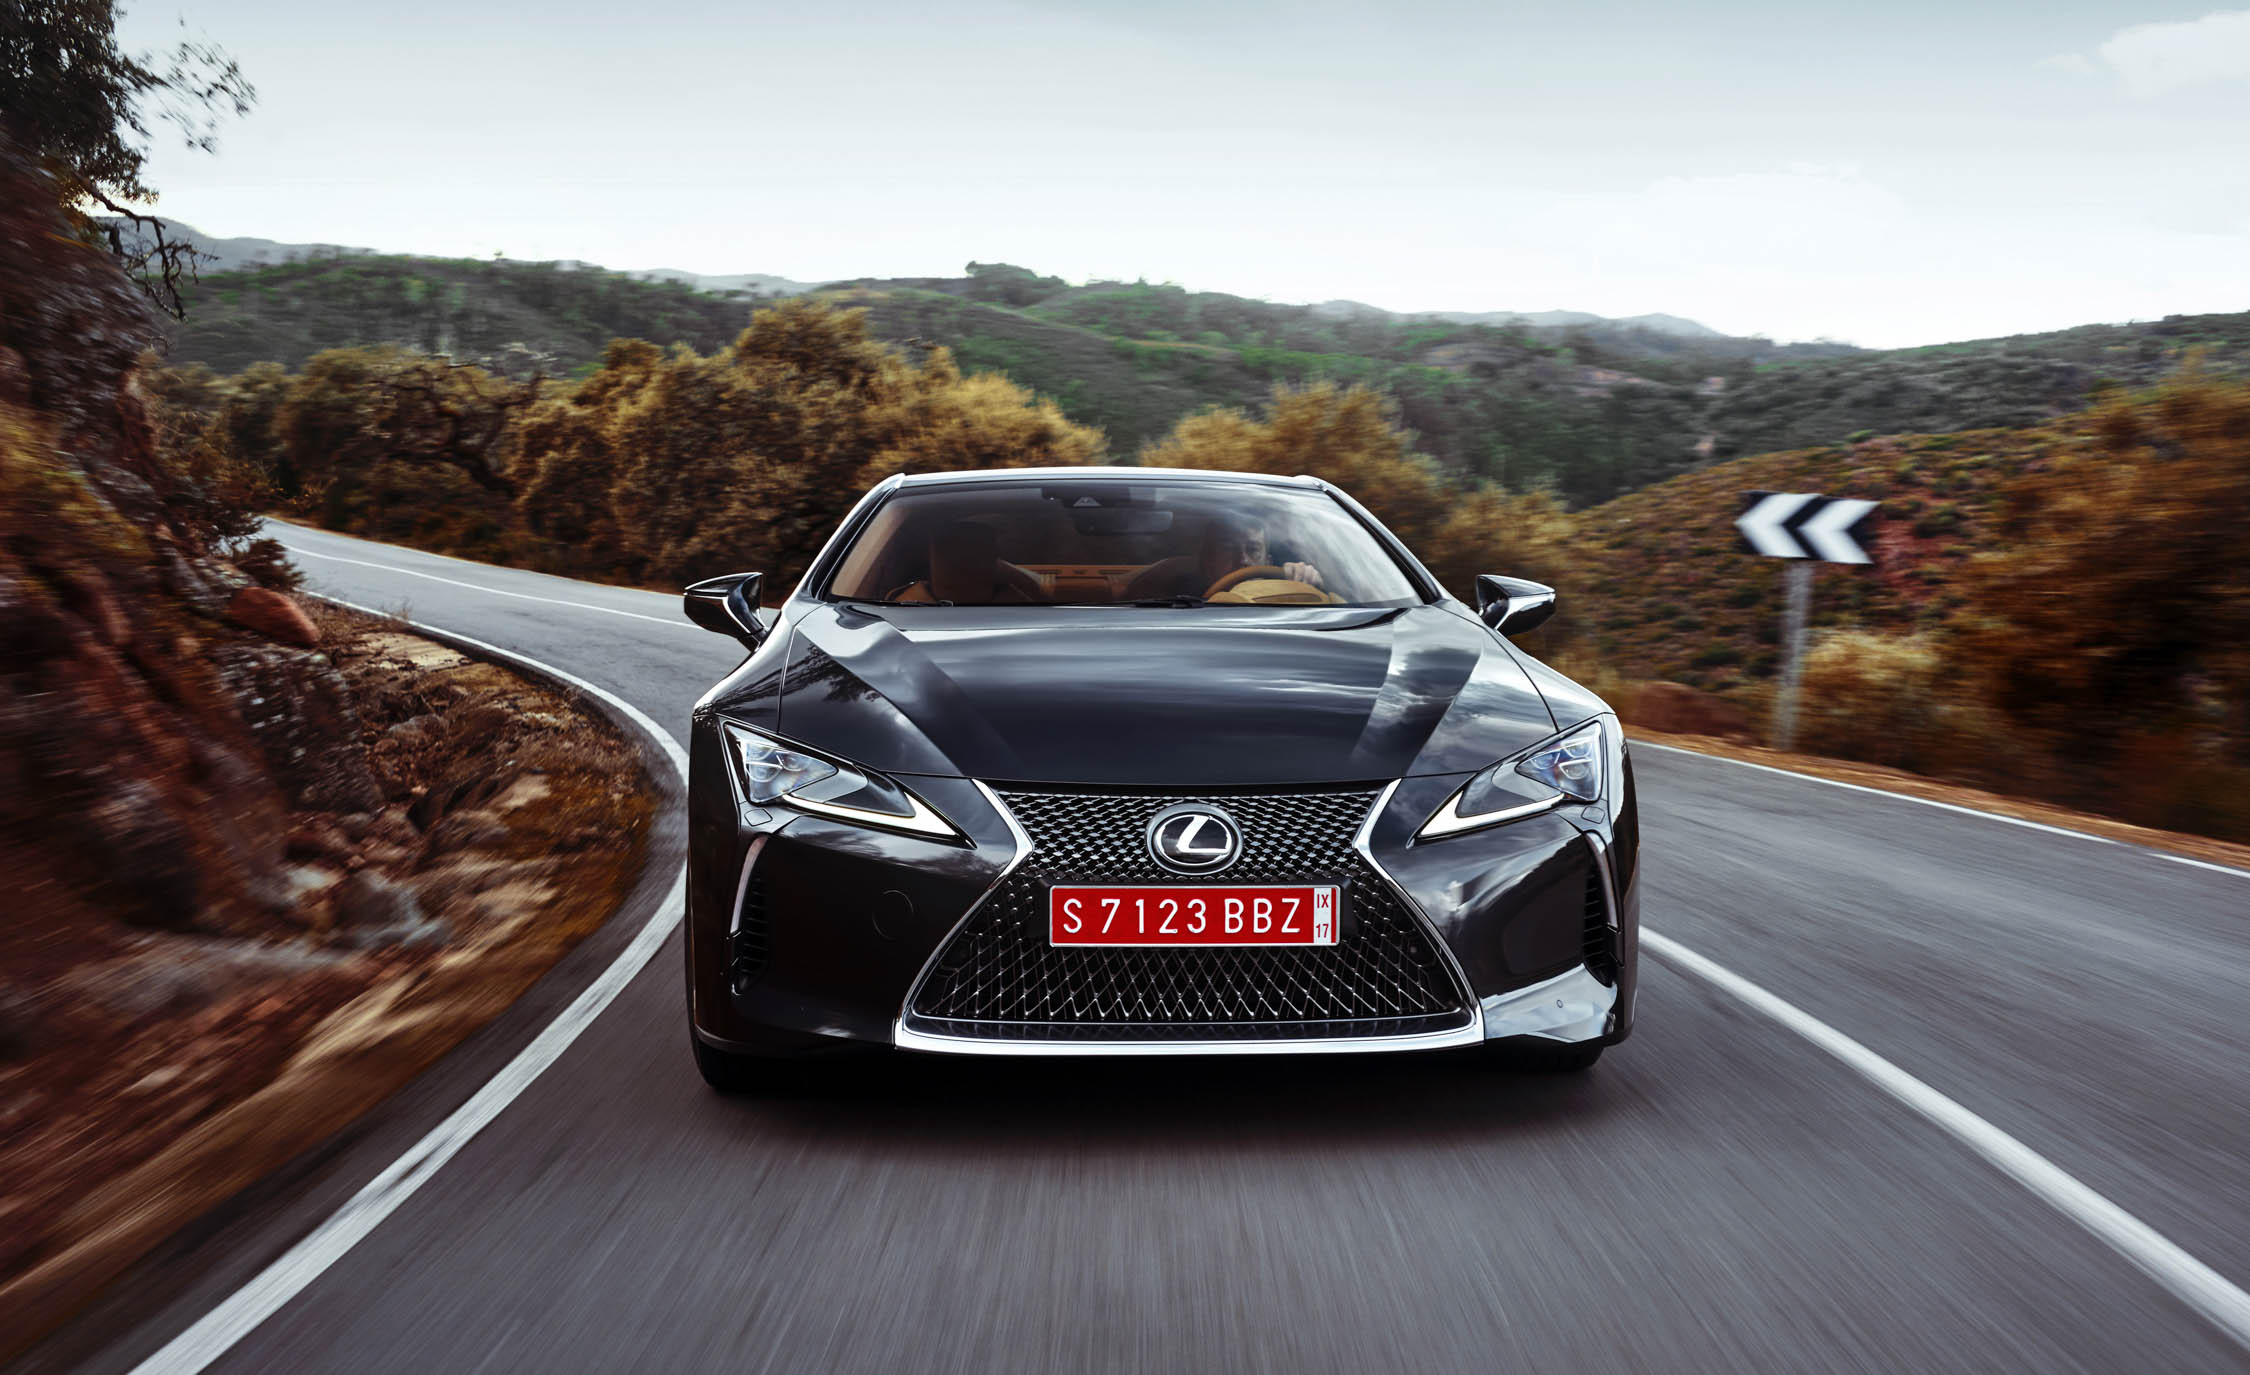 2018 Lexus Lc 500 Black Test Drive Front (Photo 10 of 84)